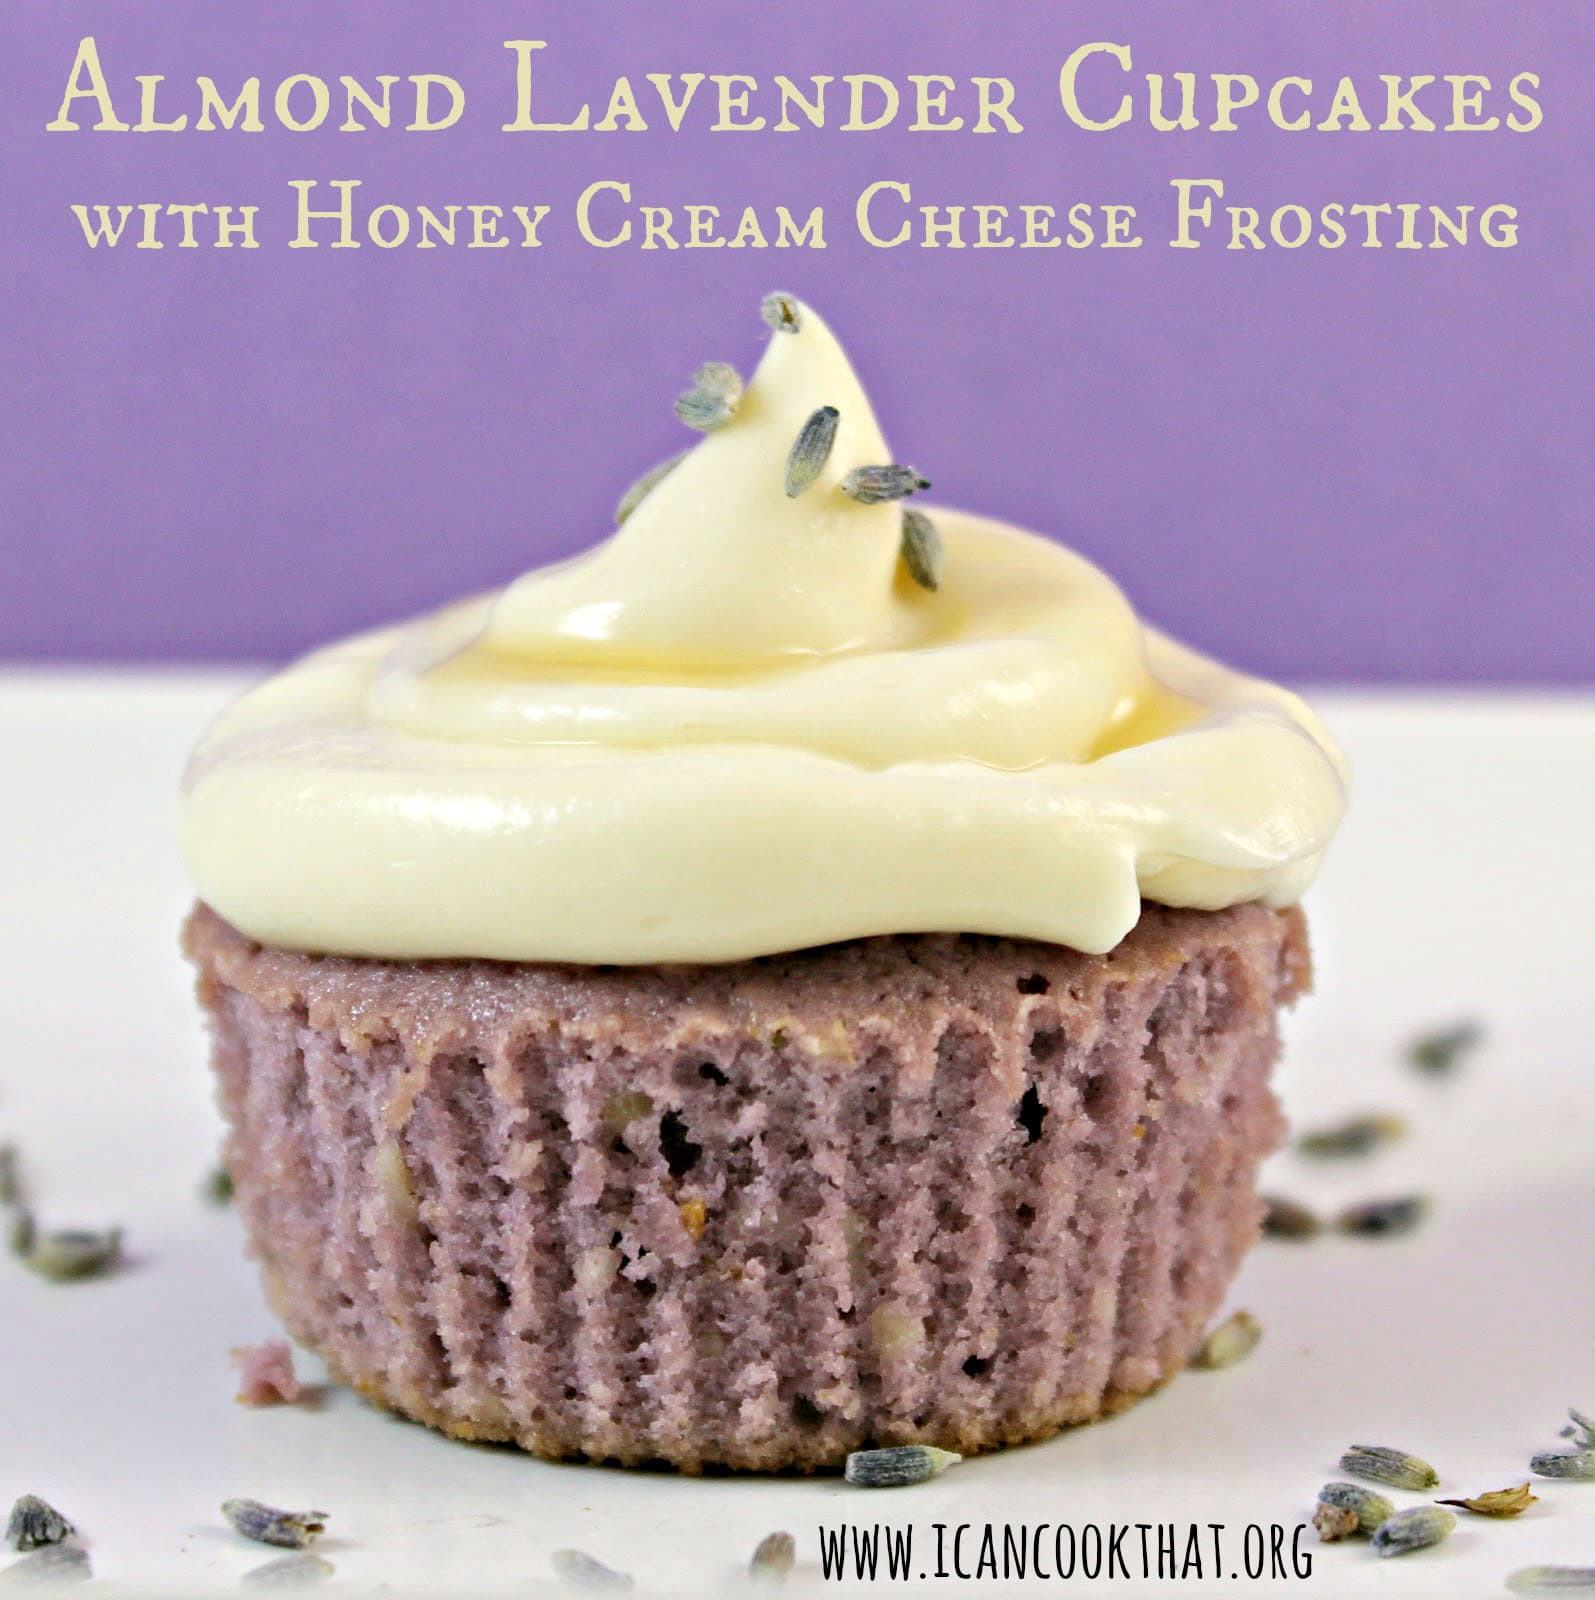 Almond Lavender Cupcakes with Honey Cream Cheese Frosting ...